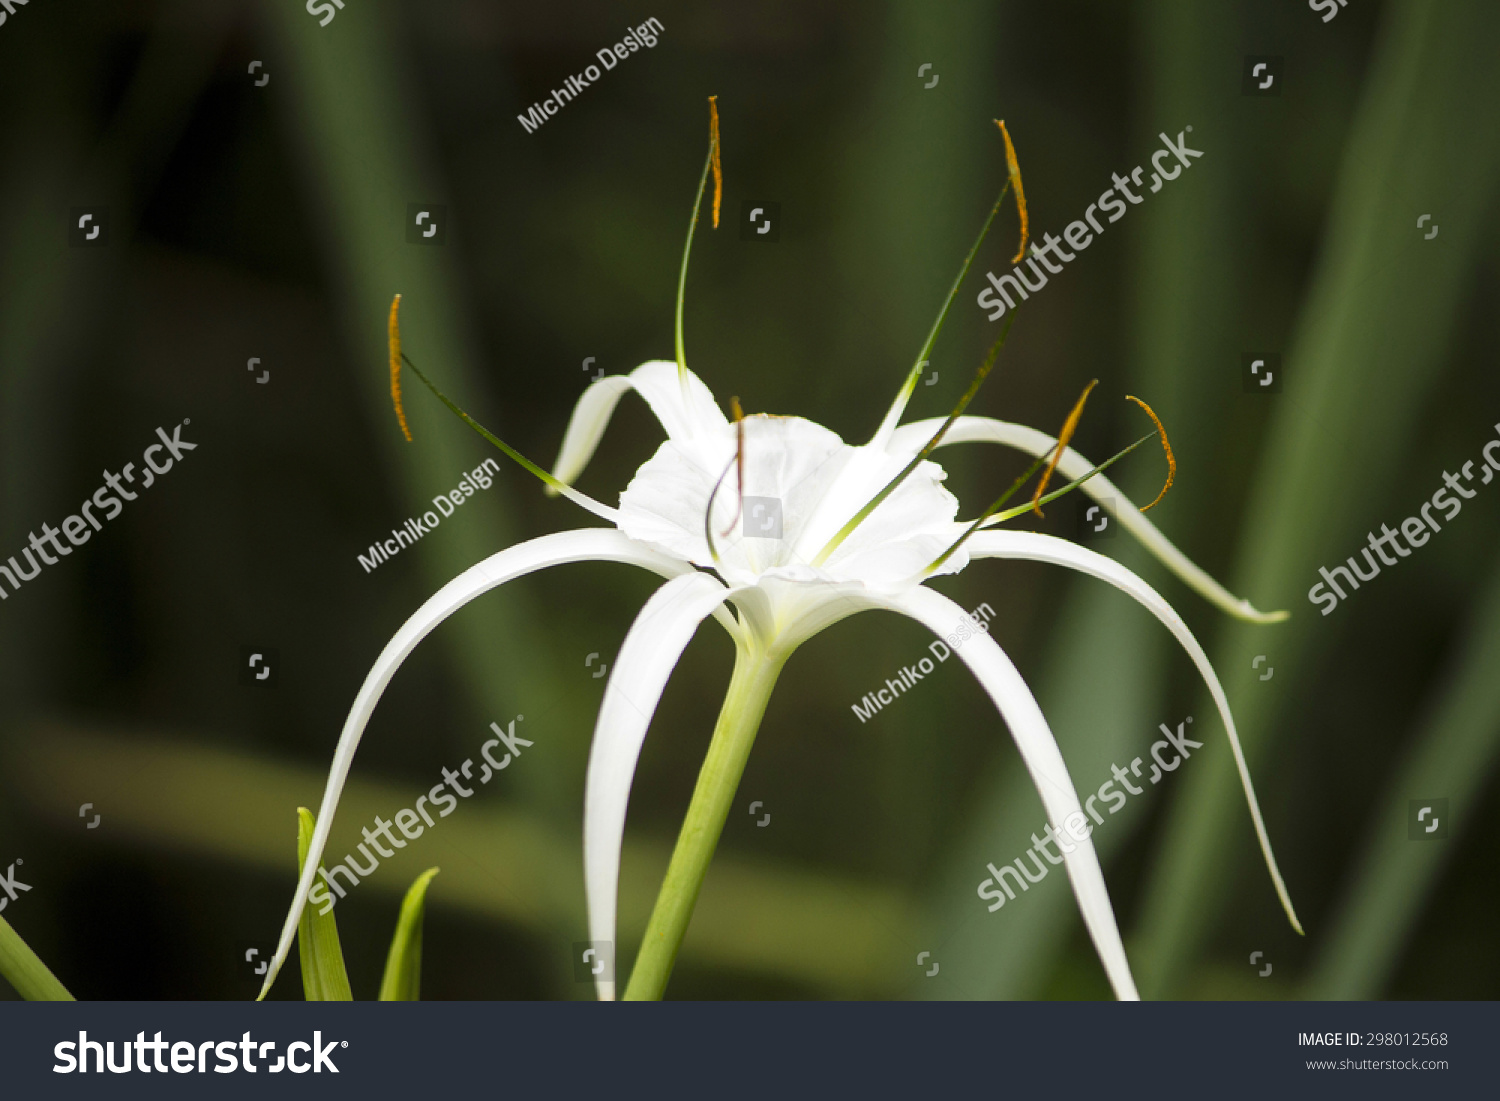 White lily like flower has long stock photo edit now 298012568 white lily like flower has long skinny petals spider lily izmirmasajfo